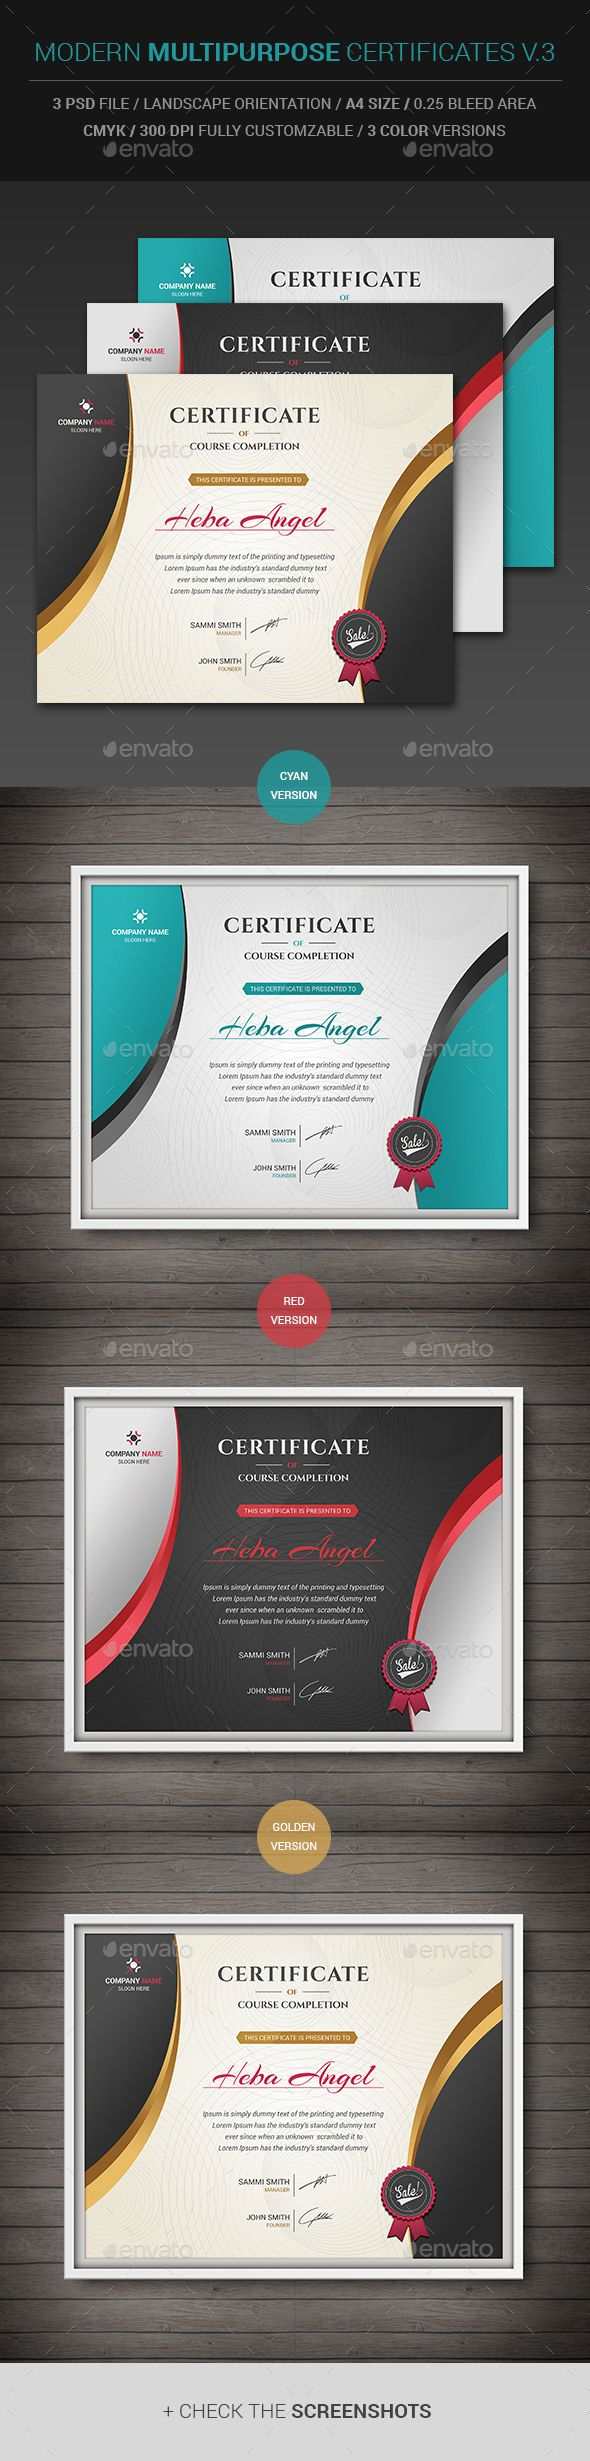 The 143 best Certificate Templates images on Pinterest | Award ...